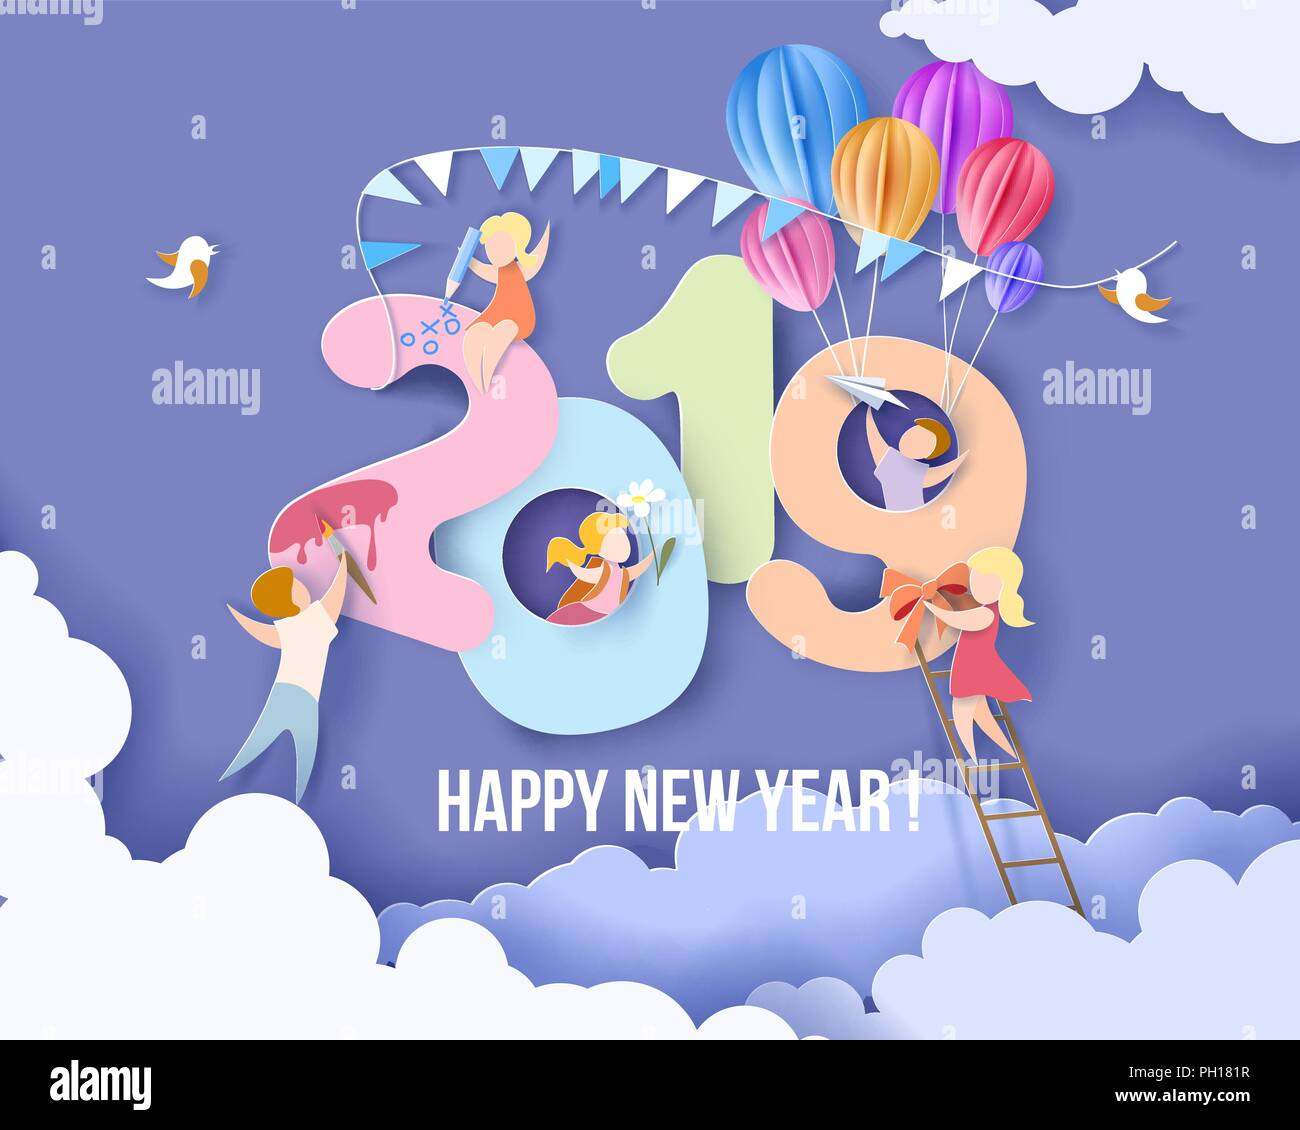 2019 New Year Design Card With Kids Blue Sky Background Vector